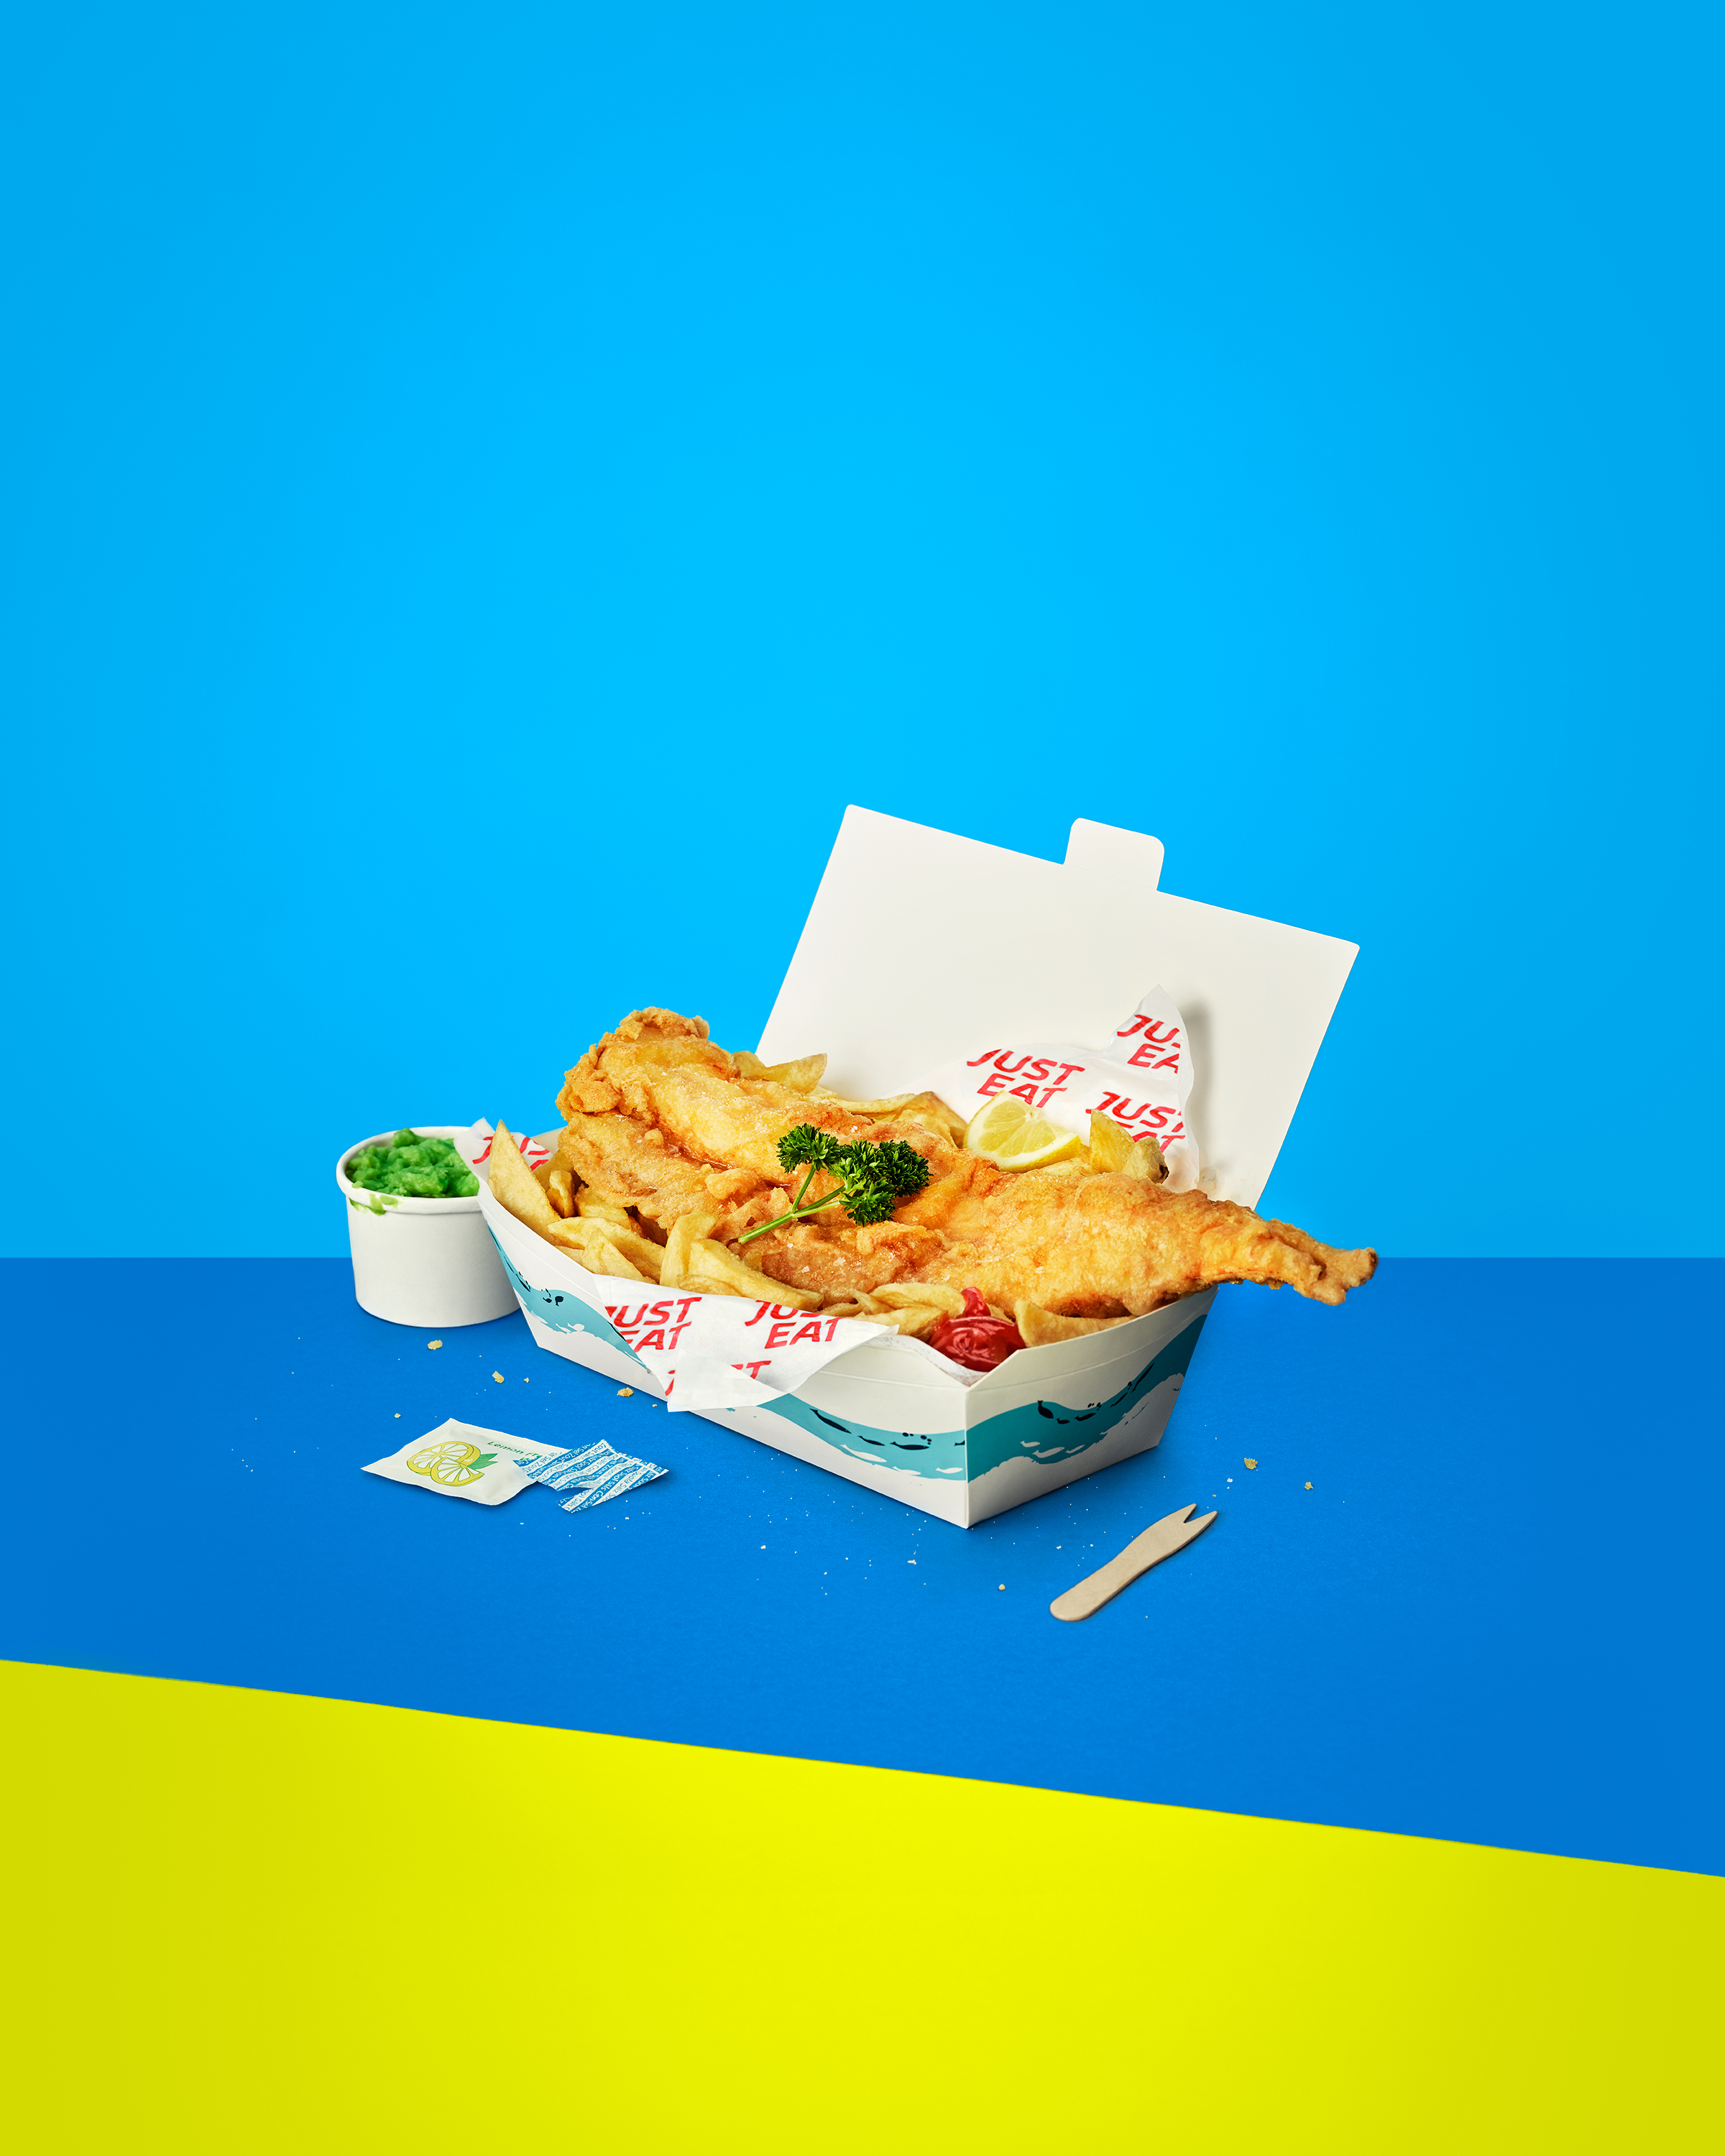 Just Eat: Brand Guidelines, Fish & Chips.